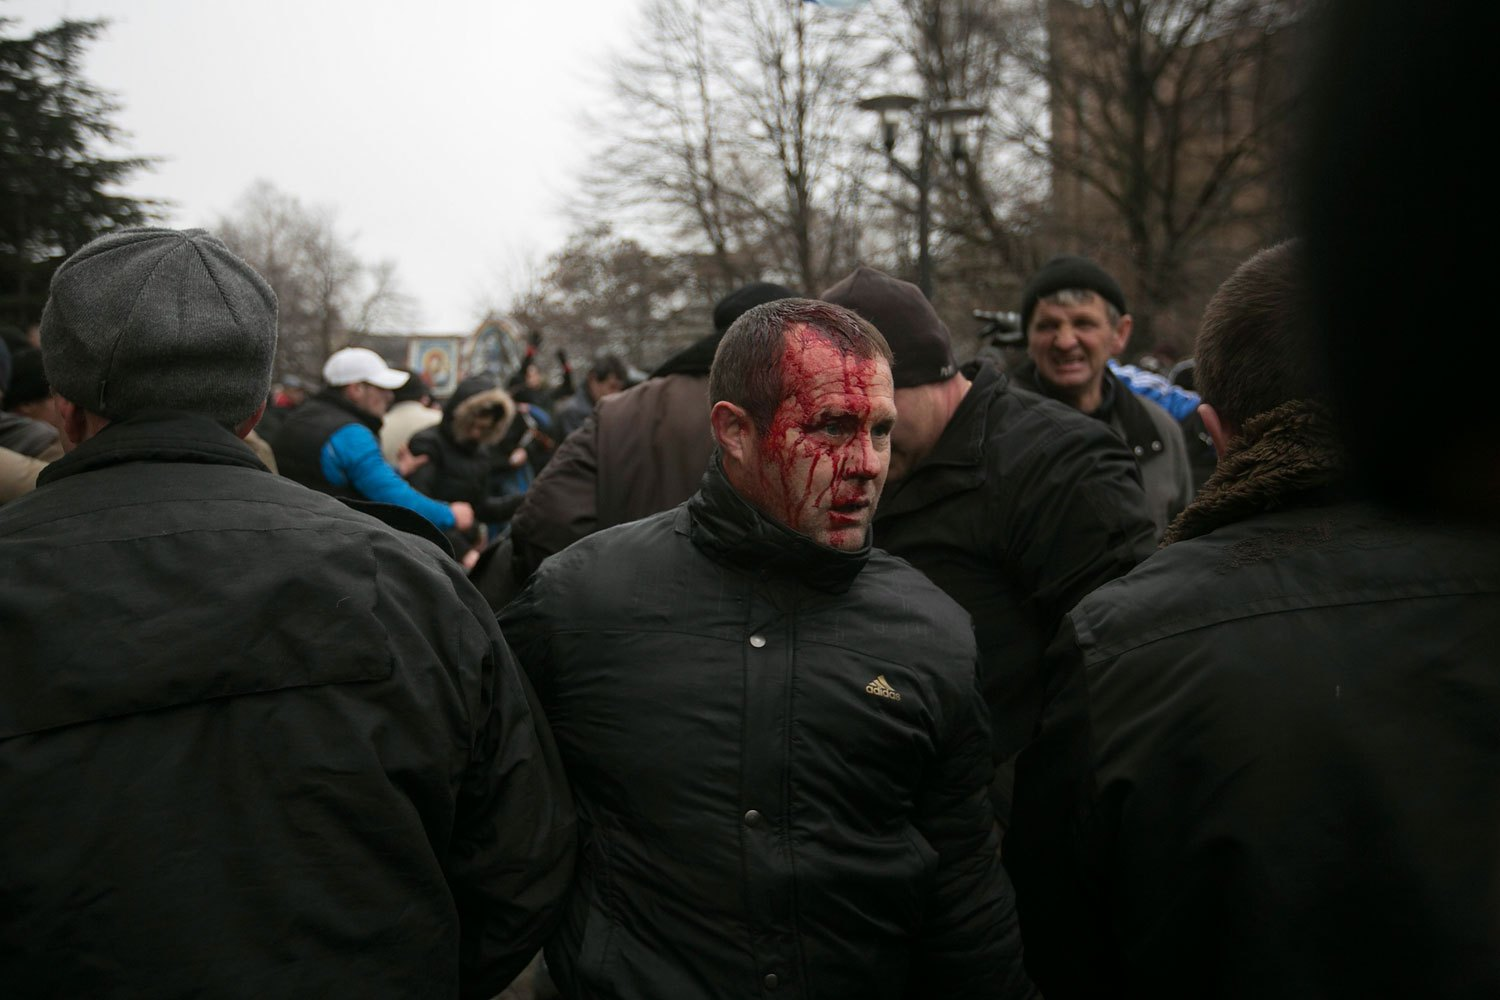 A Ukrainian man walks away after being injured in a stampede during clashes at rallies held by ethnic Russians and Crimean Tatars near the Crimean parliament building in Simferopol, Feb. 26, 2014.